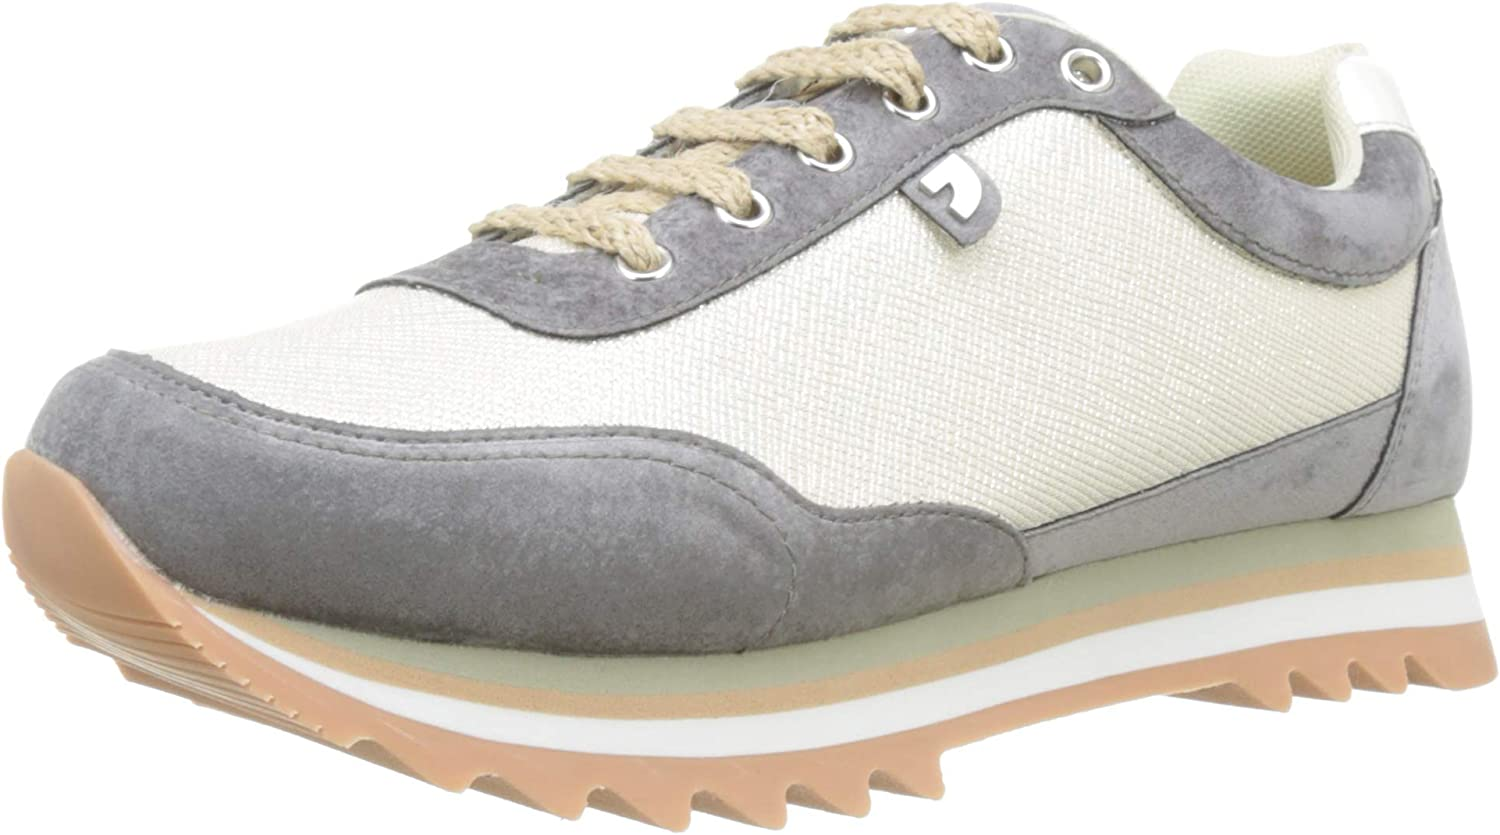 Gioseppo Women's 47684 Low-Top Sneakers